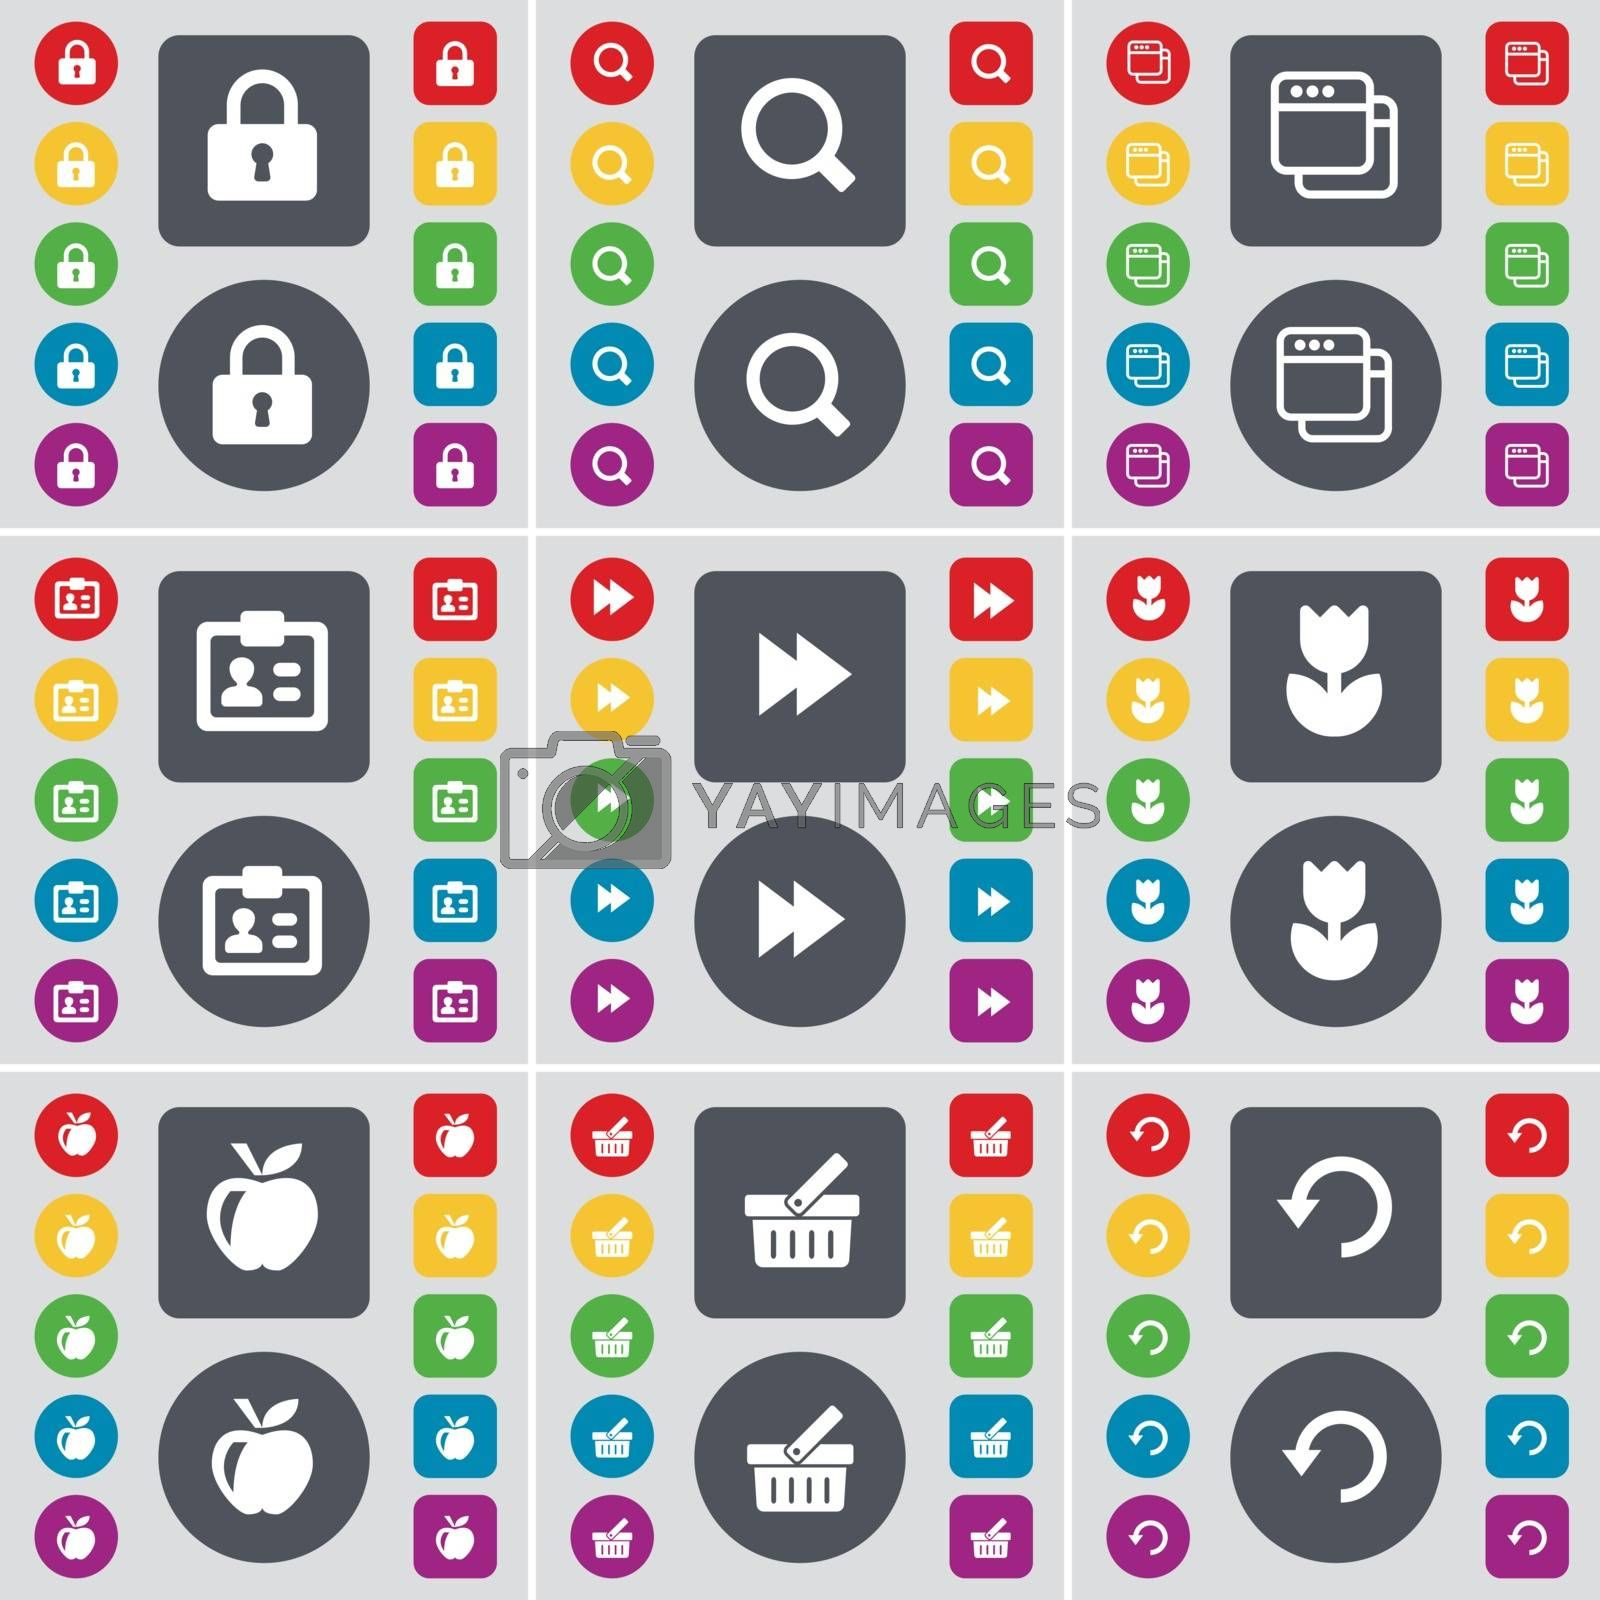 Royalty free image of Lock, Magnifying glass, Windows, Contact, Rewind, Flower, Apple, Basket, Reload icon symbol. A large set of flat, colored buttons for your design. Vector by serhii_lohvyniuk